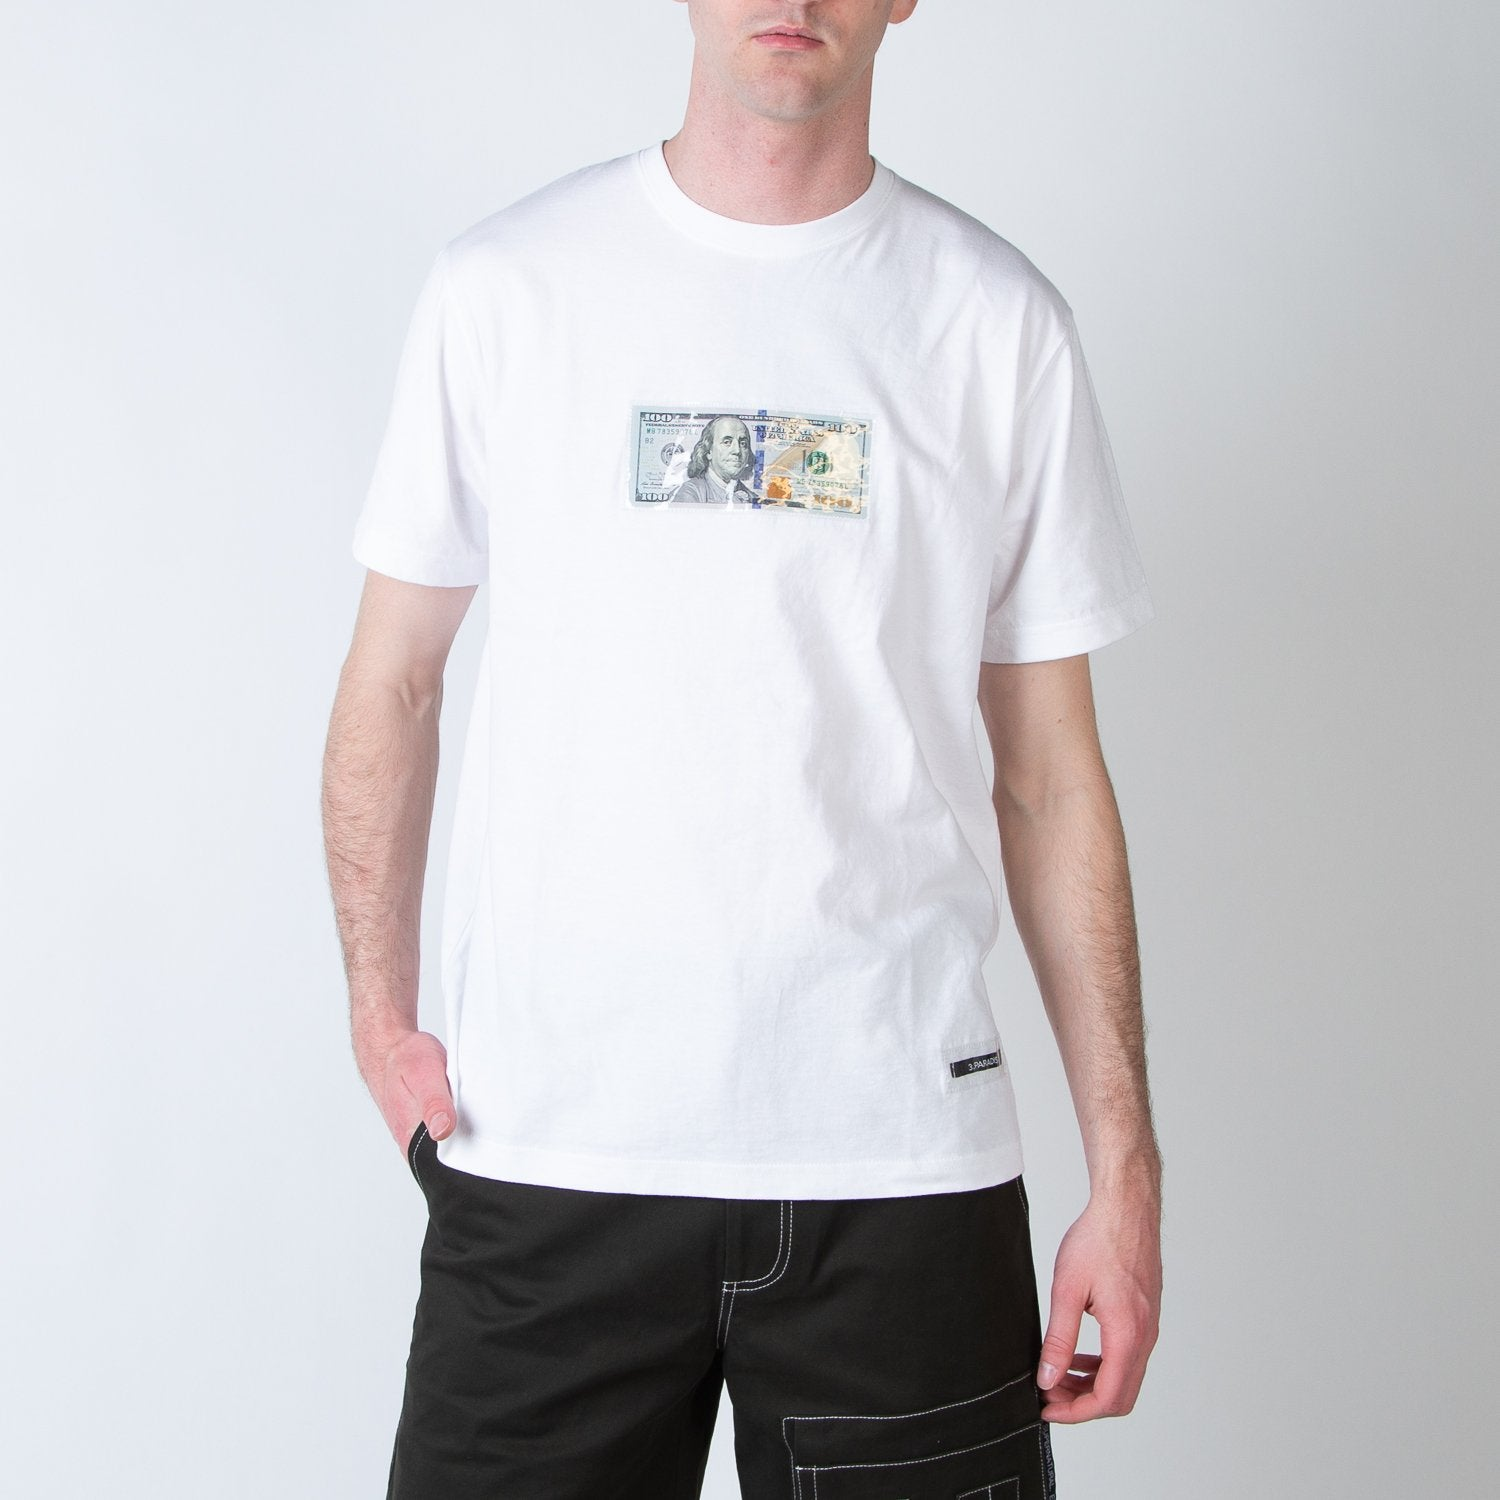 100$ dollar bill t-shirt in white by 3.Paradis at Secret Location